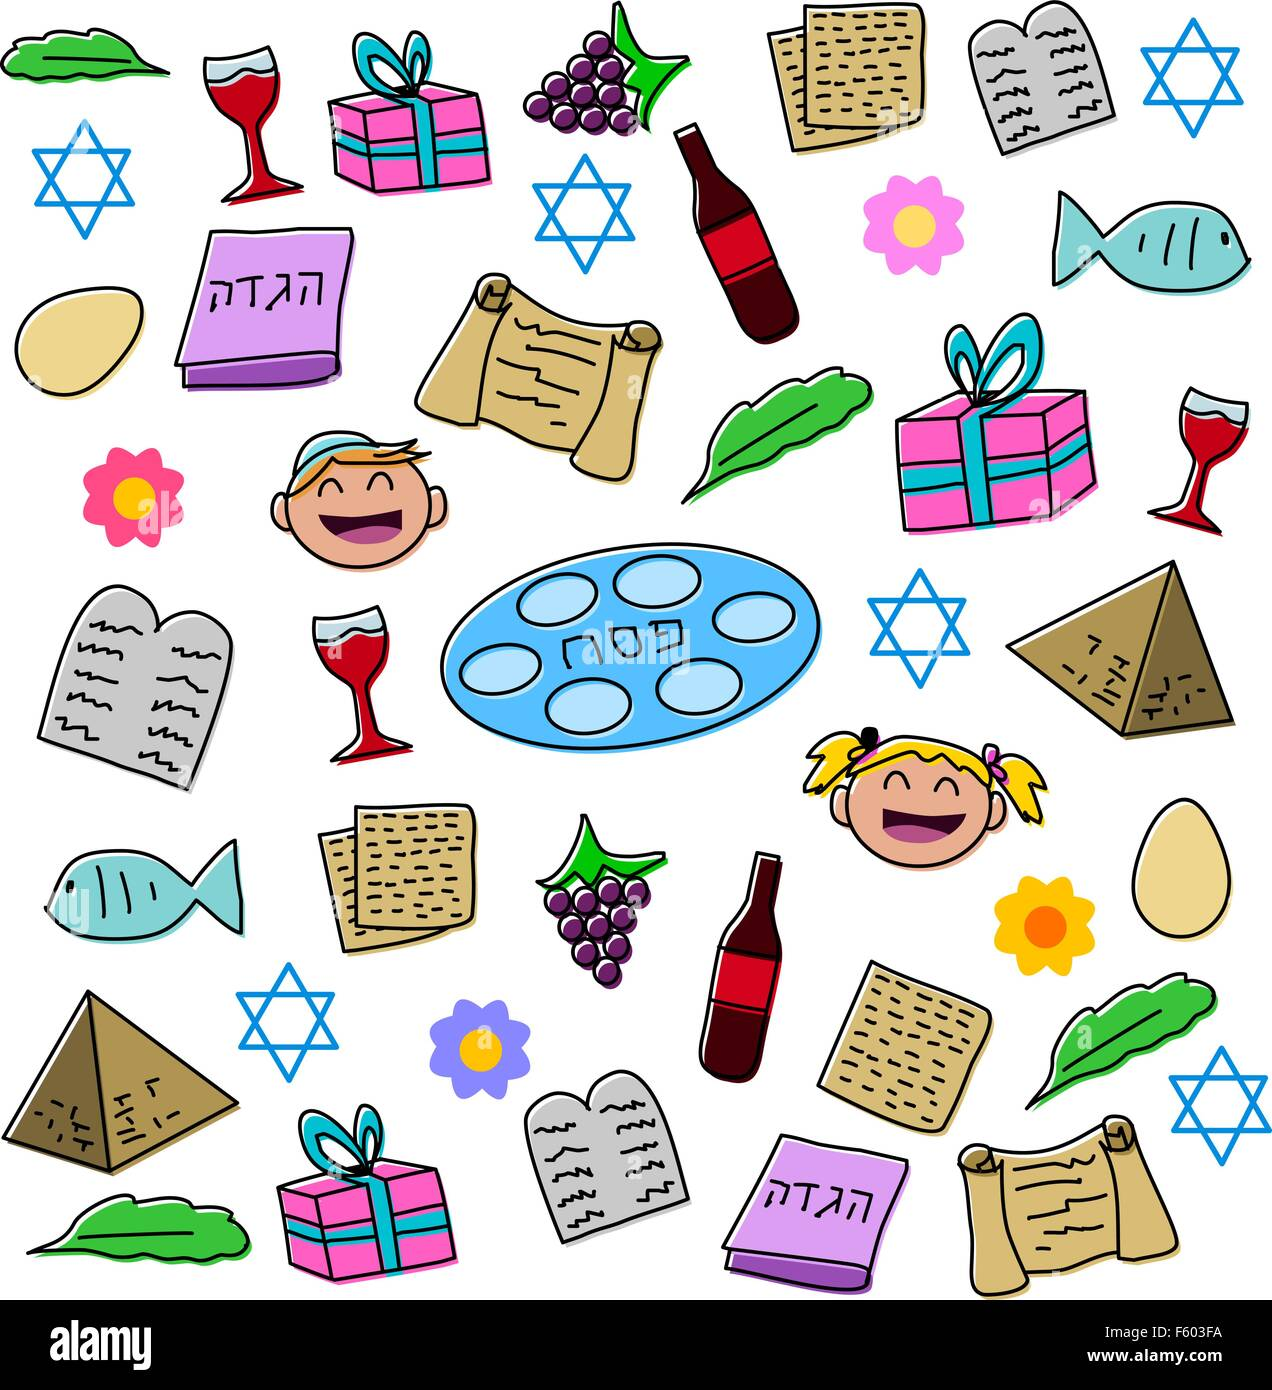 Vector illustration pack of Passover symbols and icons. - Stock Image